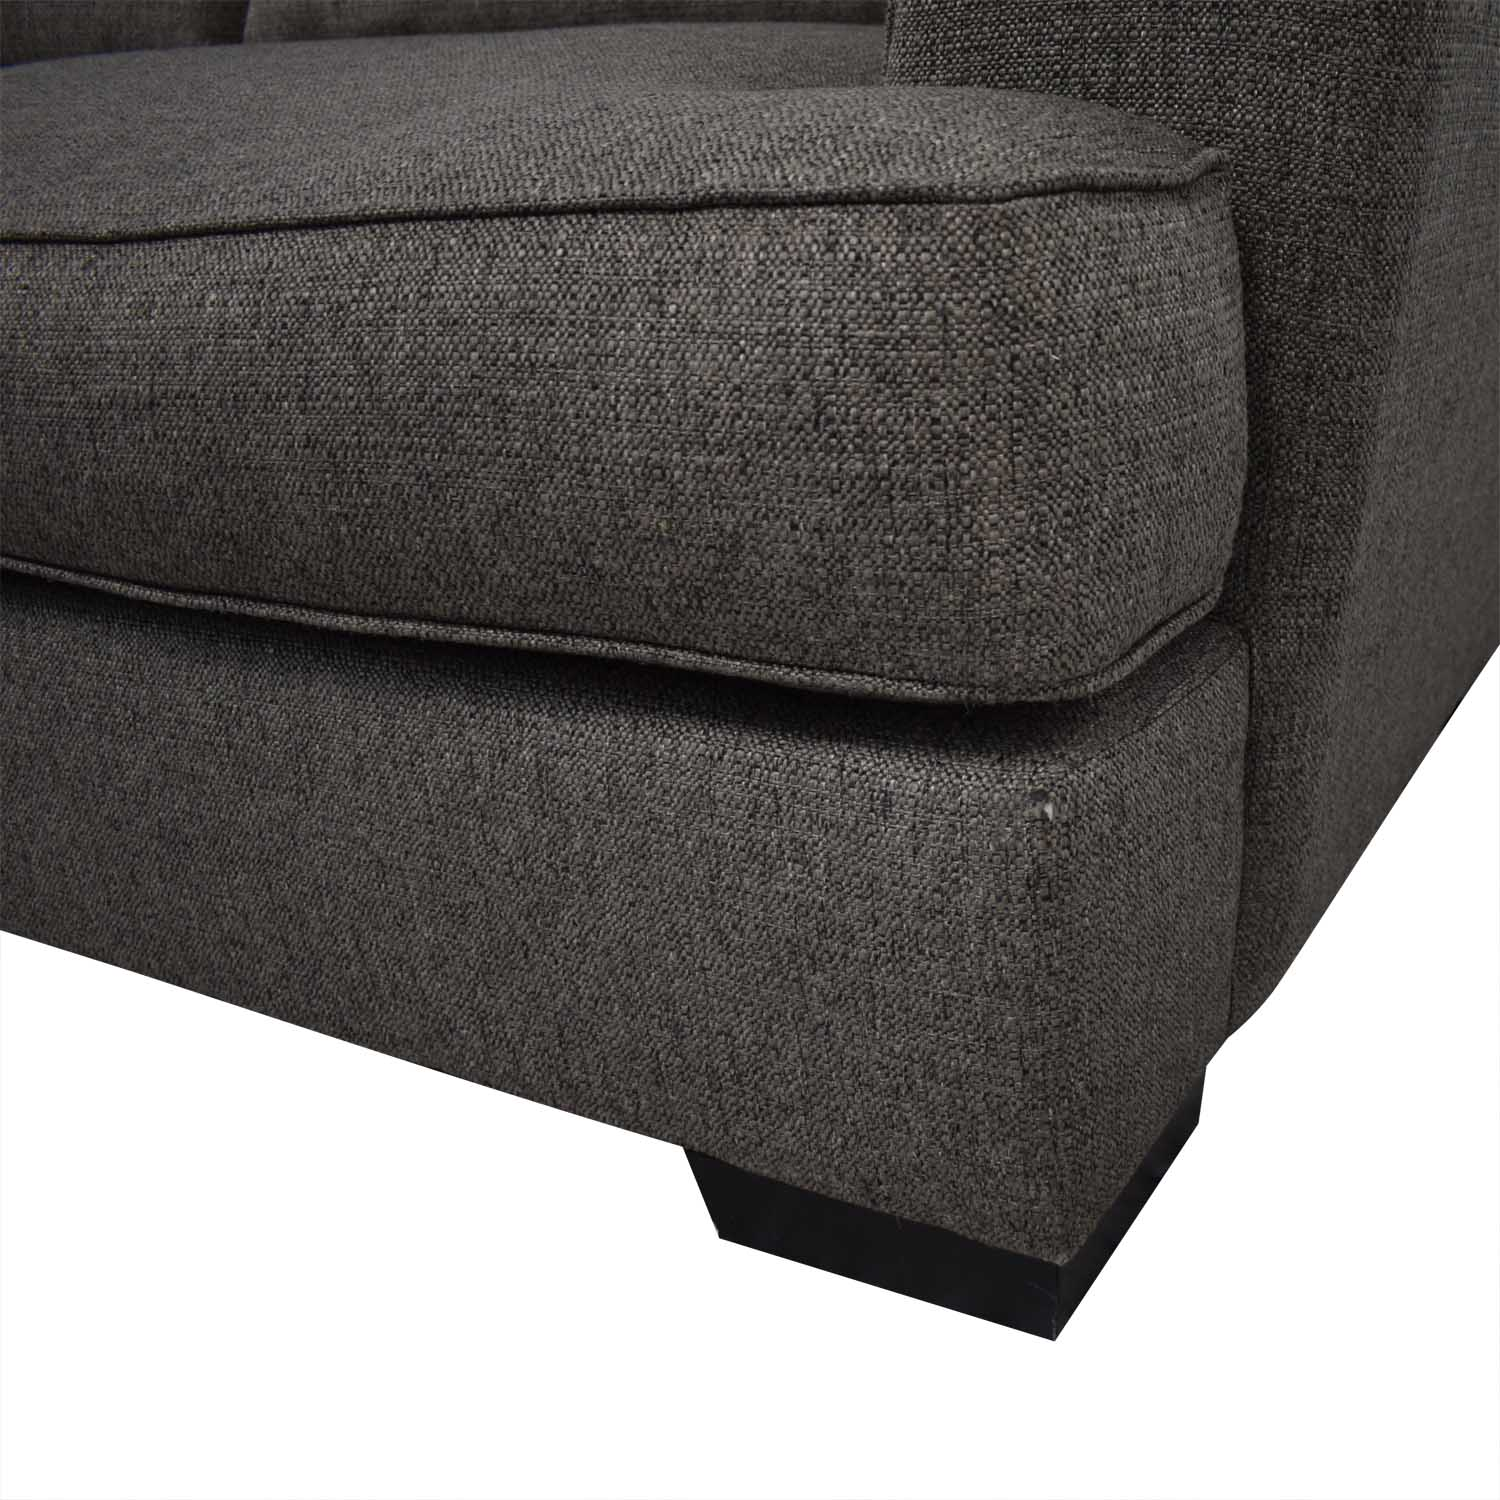 Macy's Ainsley Sofa / Sofas